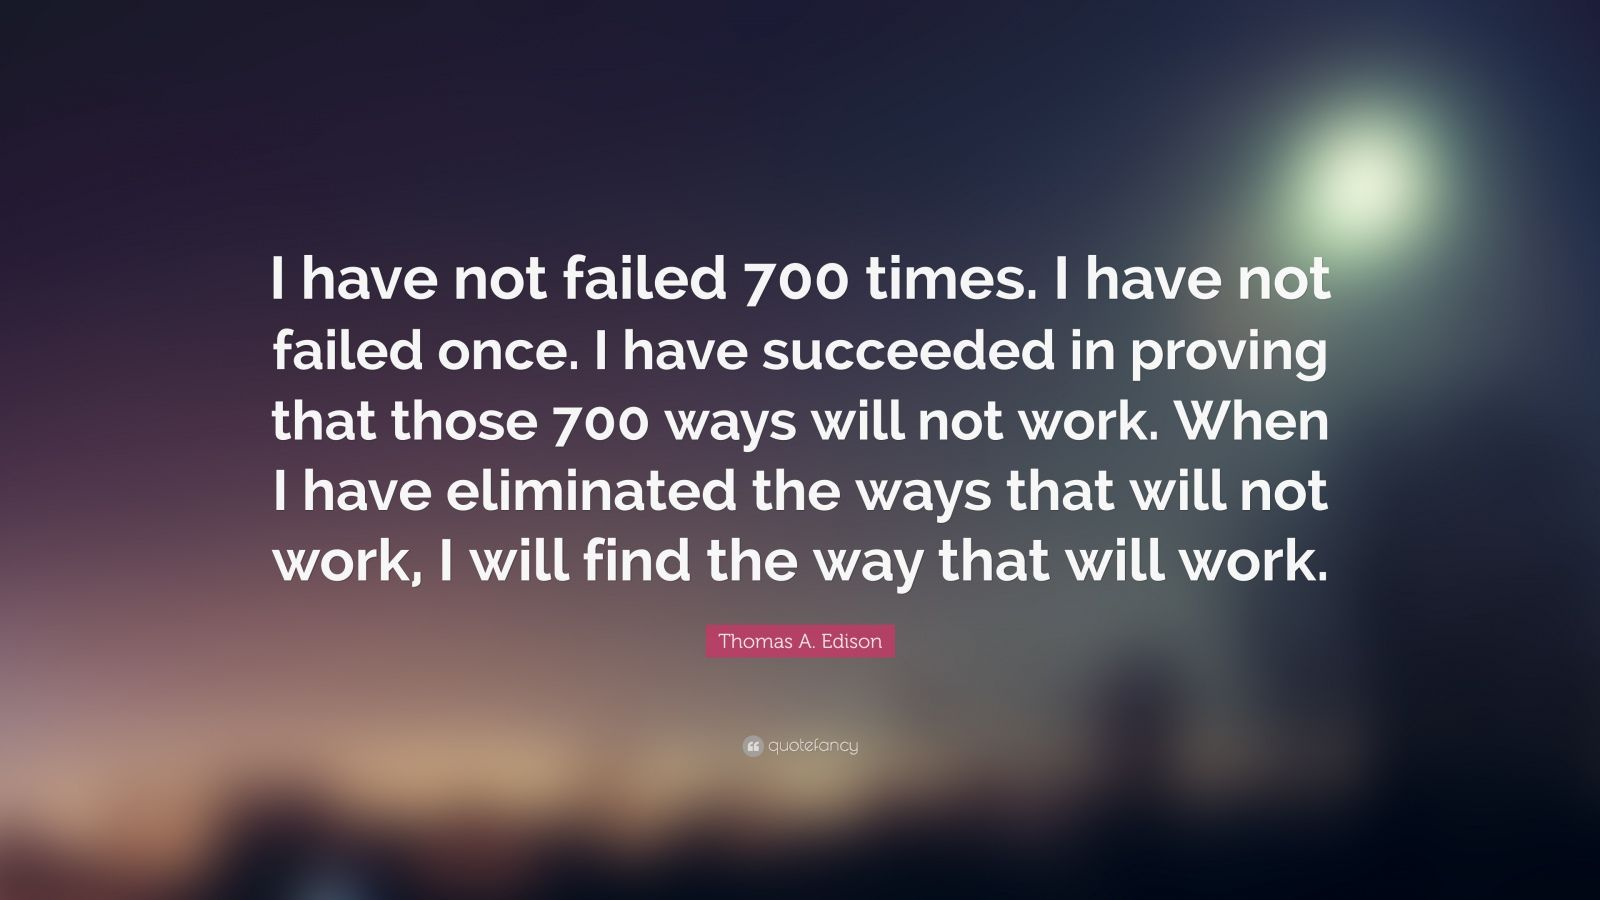 "Thomas A. Edison Quote: ""I have not failed 700 times. I have not failed once. I have succeeded in proving that those 700 ways will not work. When I have eliminated the ways that will not work, I will find the way that will work."""